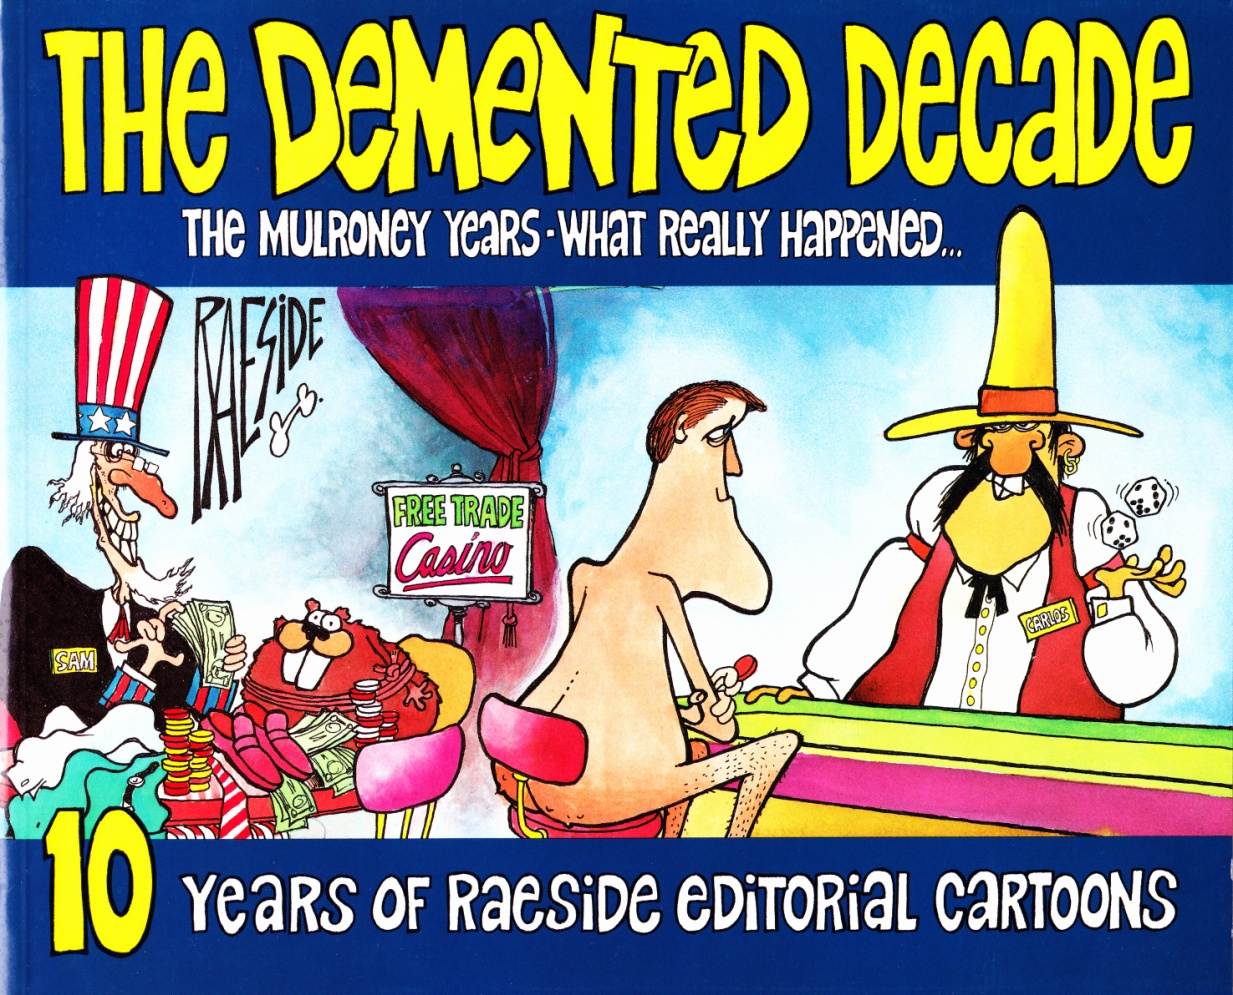 C:\Users\Robert\Documents\CARTOONING ILLUSTRATION ANIMATION\IMAGE BY CARTOONIST\R\RAESIDE, Adrian Demented Decade  front cover.jpg